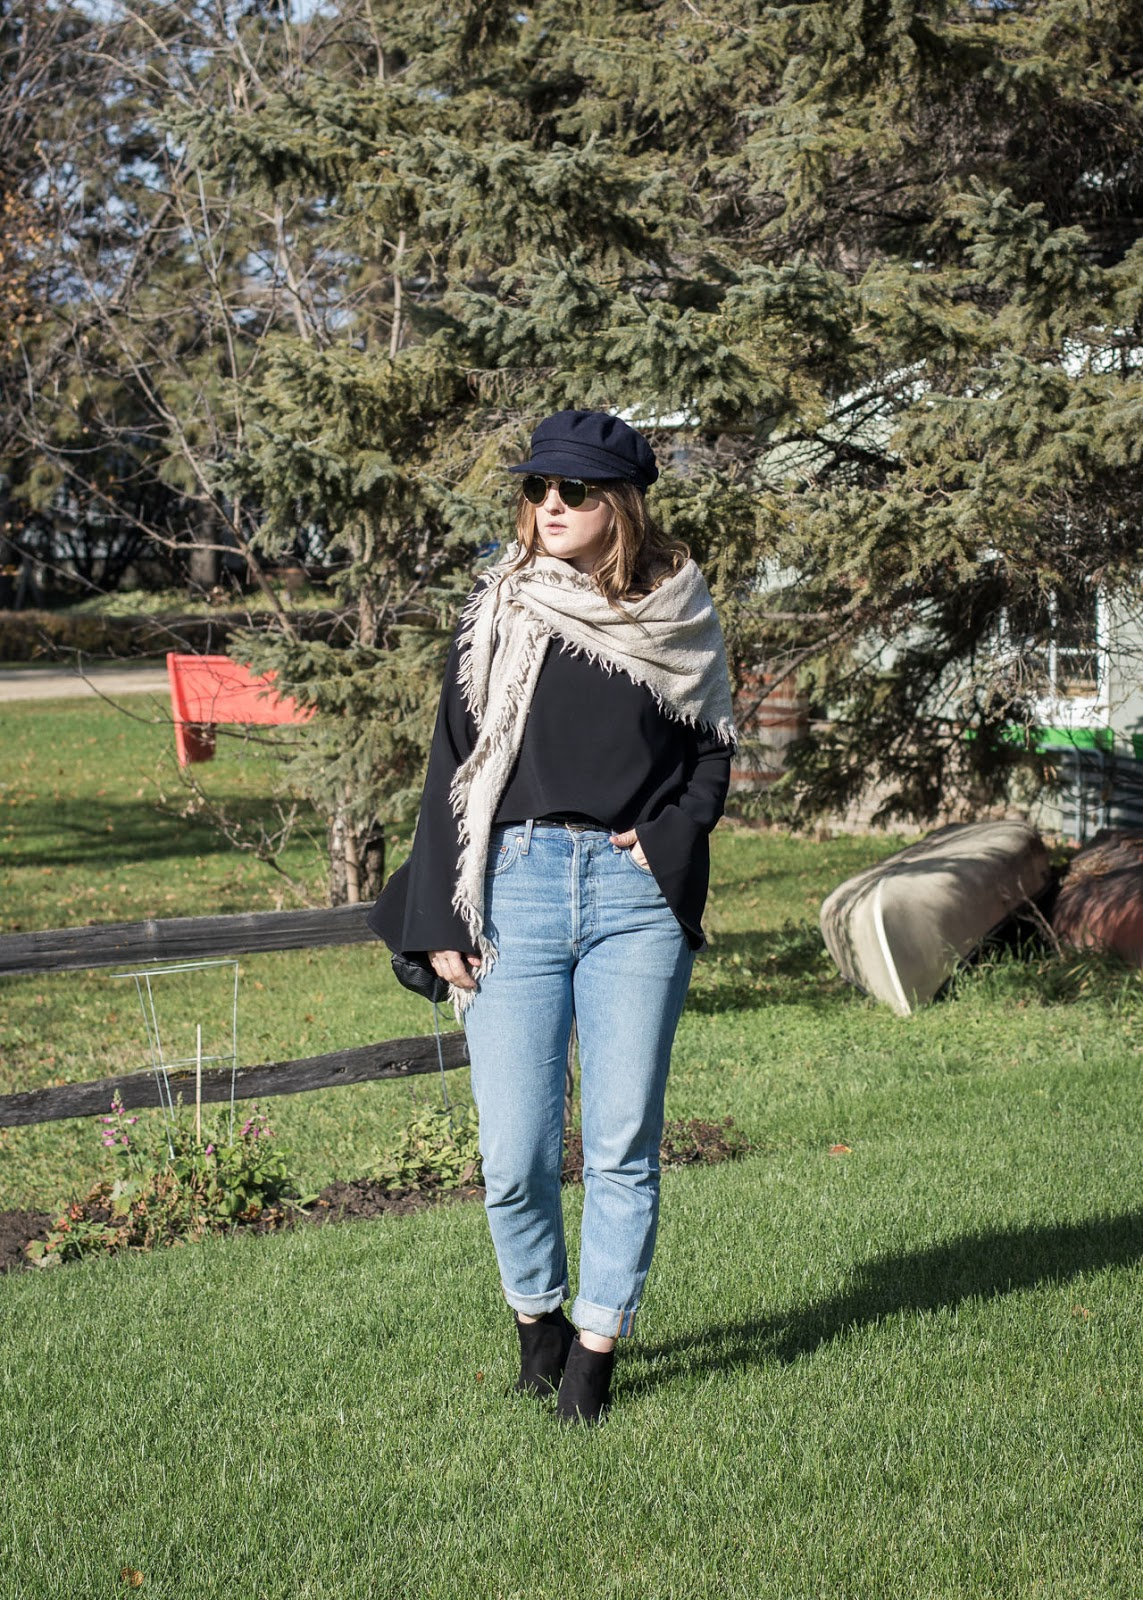 Aritzia hat and scarf, Ray-Ban sunglasses, AGOLDE jeans, Forever 21 top, H&M boots